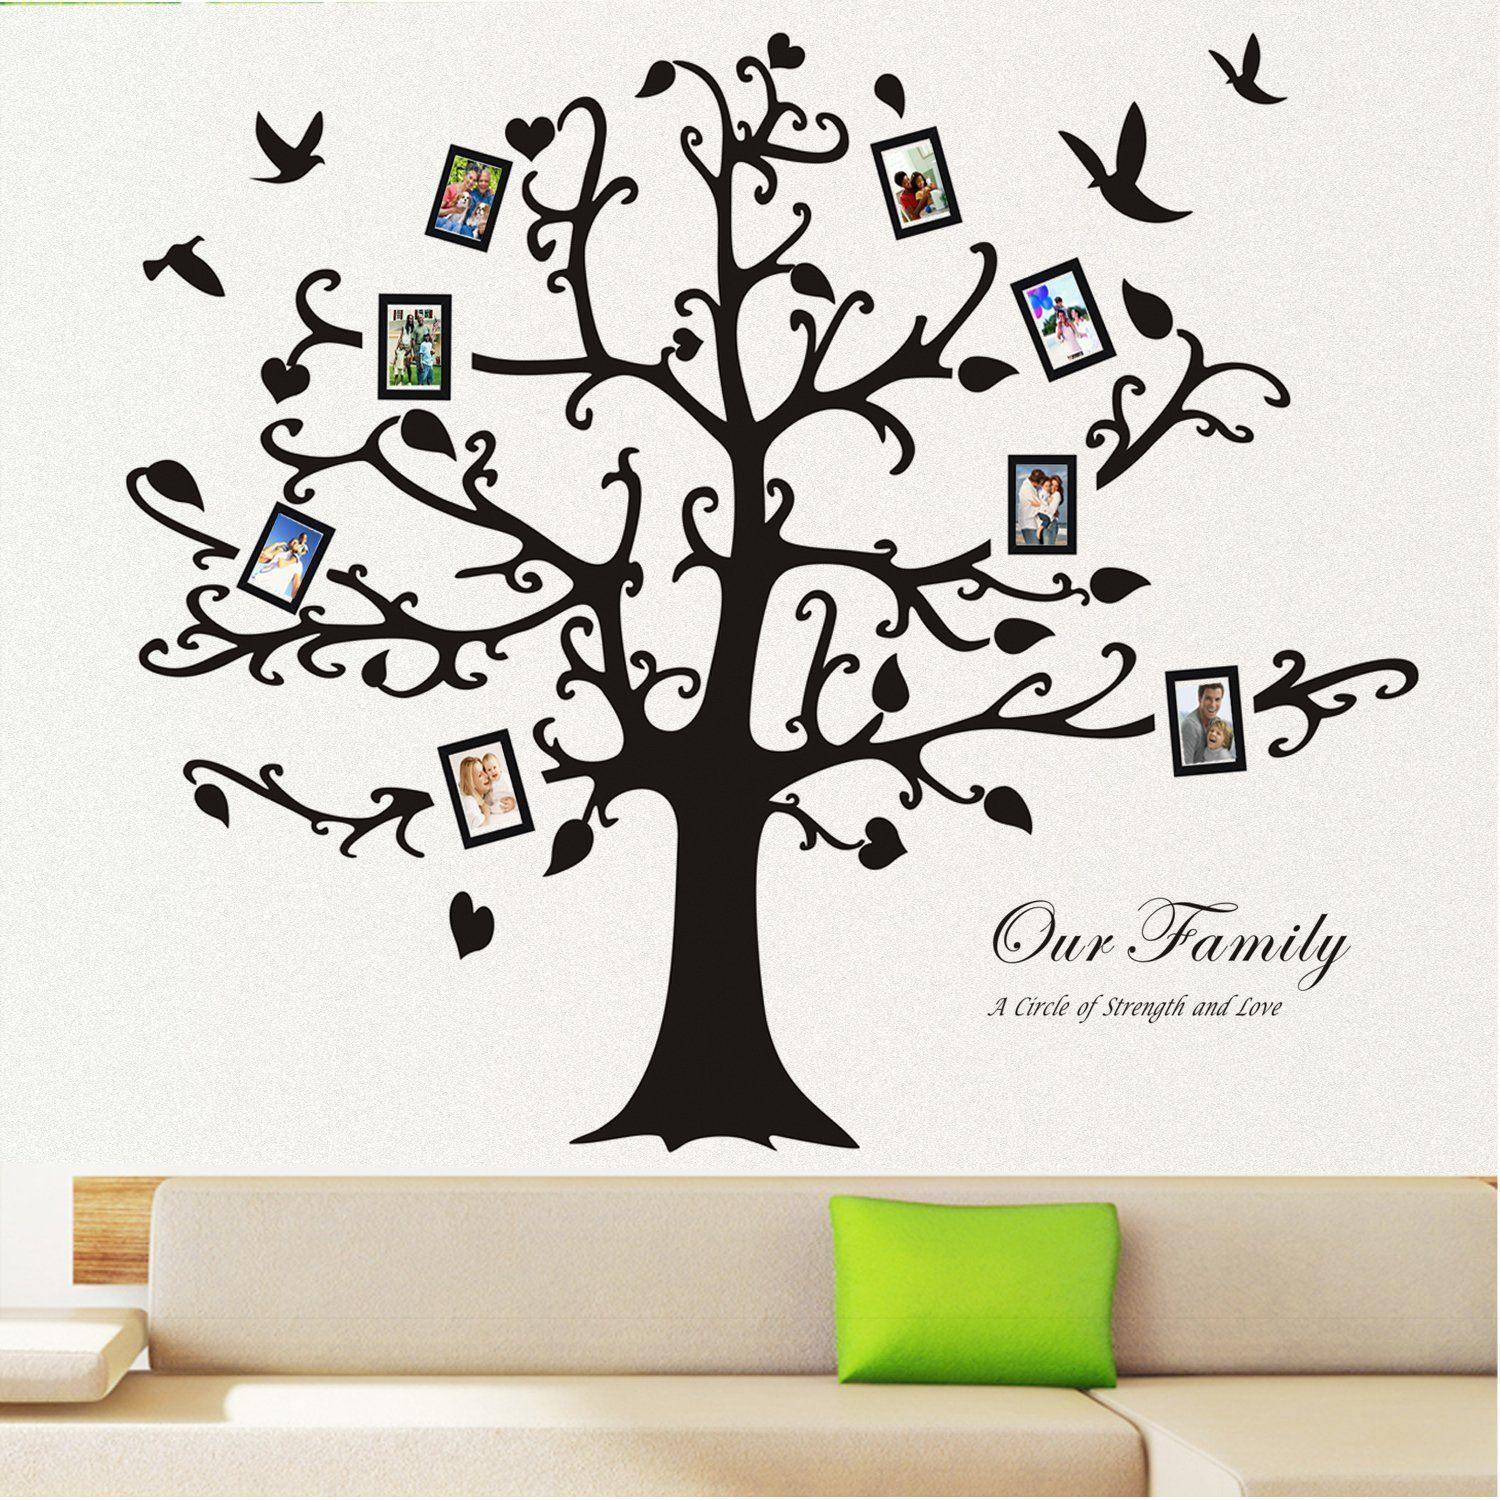 Homecube 100 X 100 Huge Xxxl Black Photo Picture Frame Tree Wall Decal Removable Sticker Decorative Supplies Vinyl Tree Wall Decal Vinyl Art Decorating Blogs